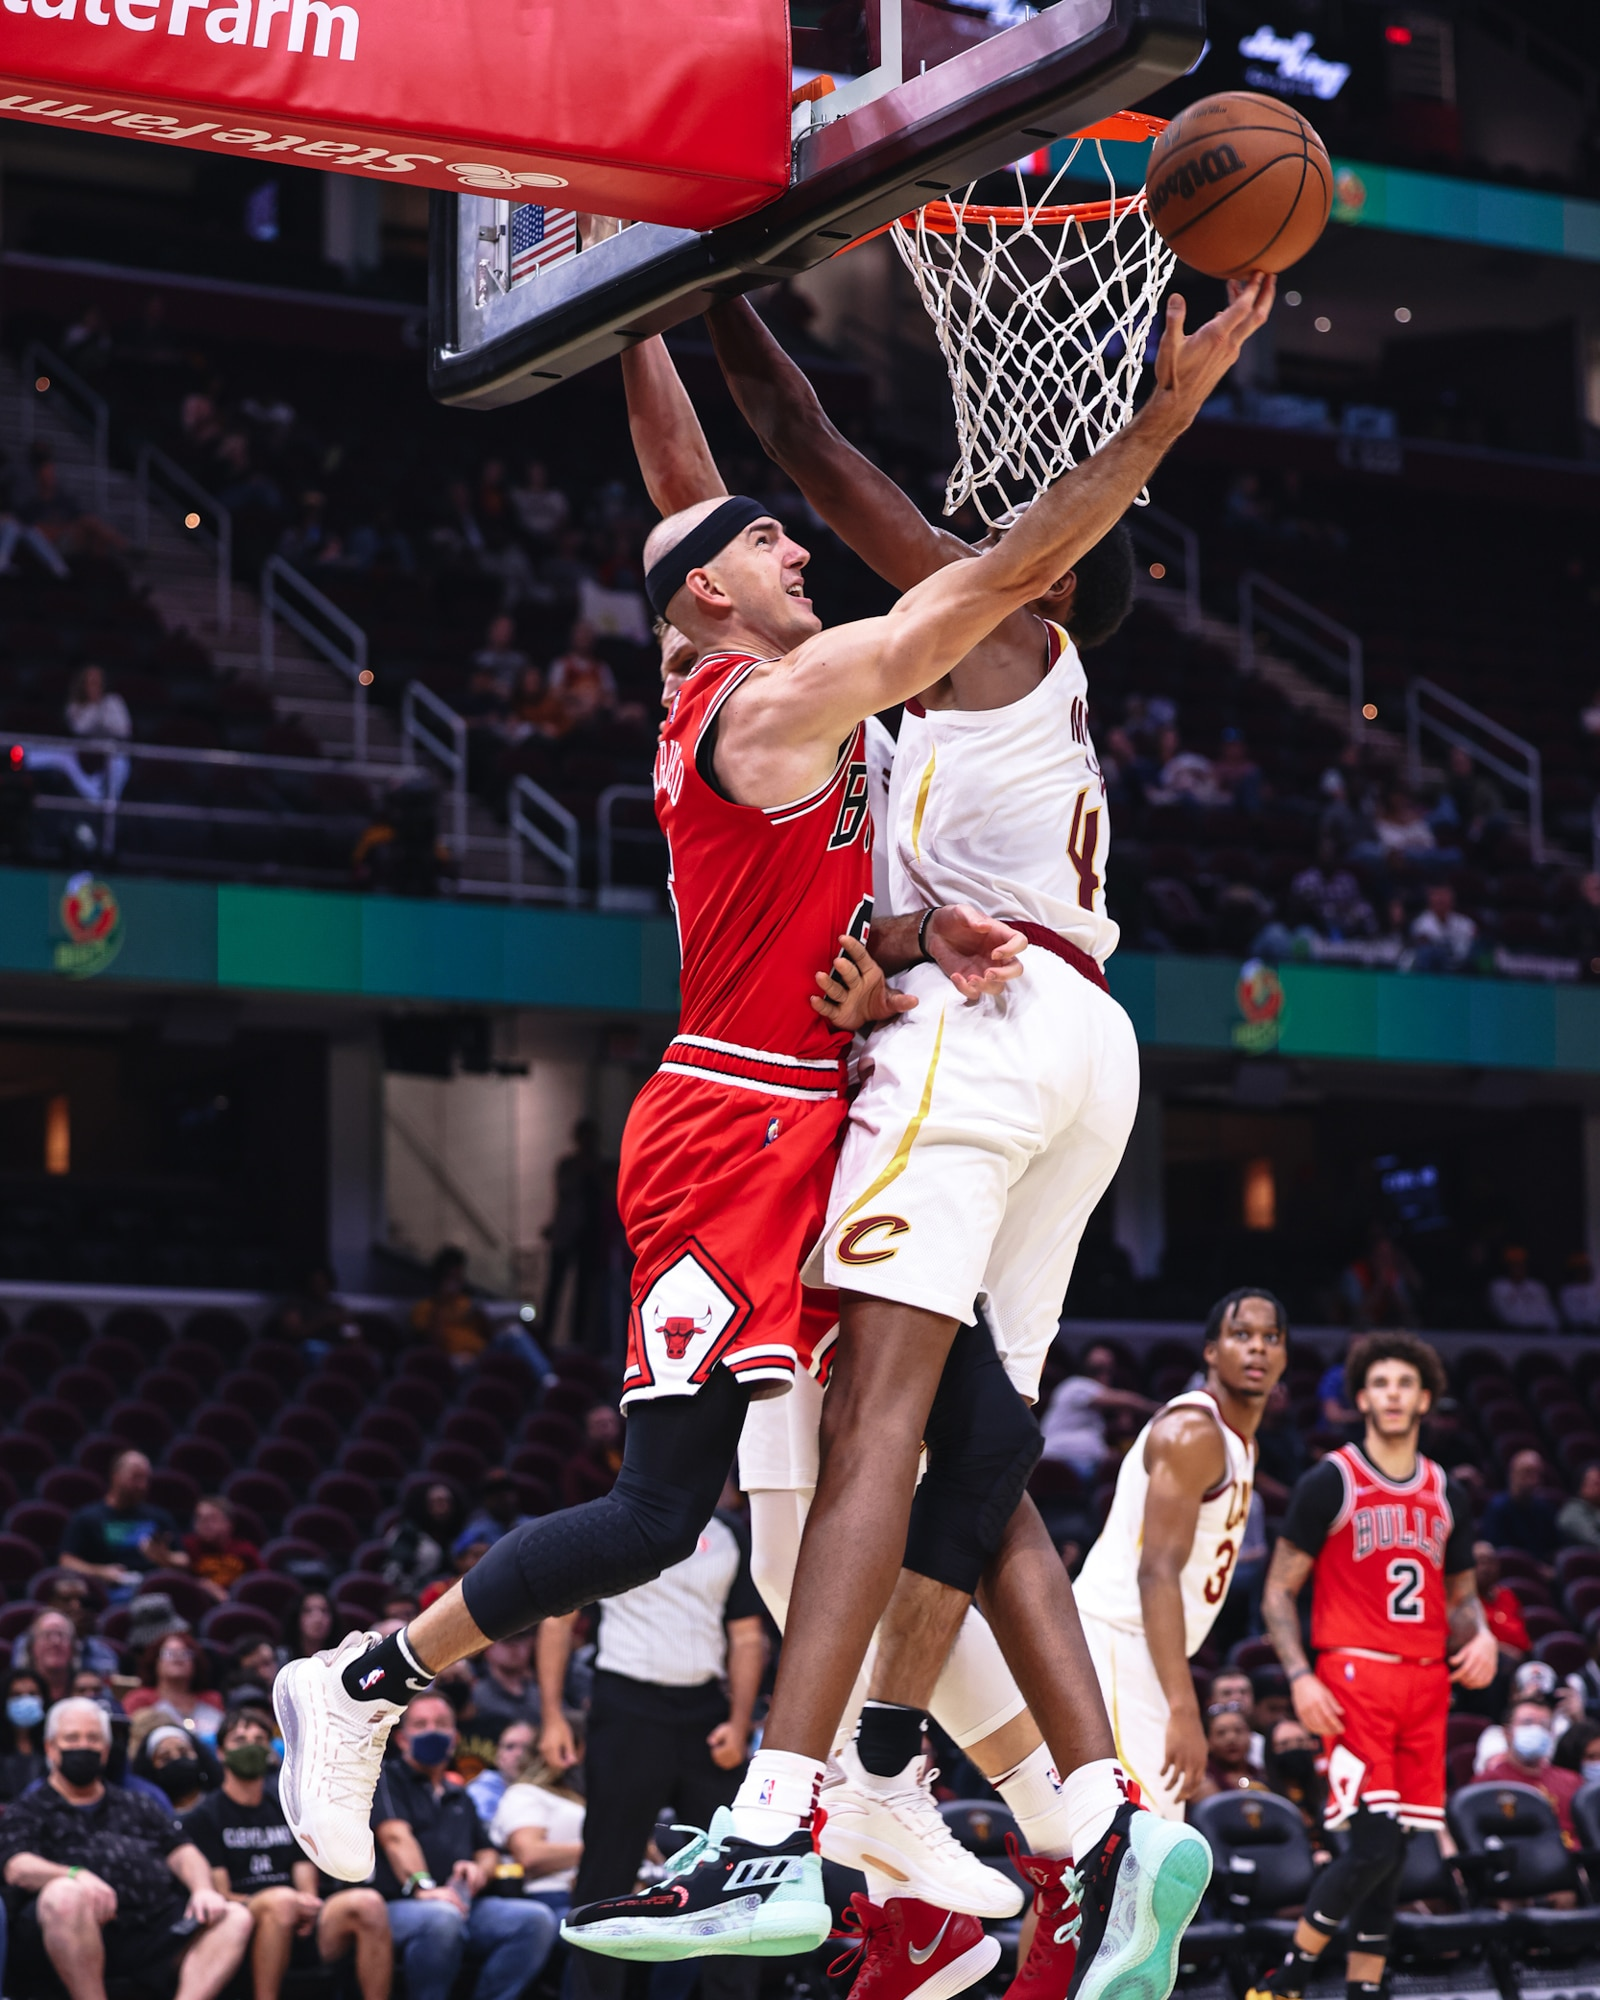 Alex Caruso goes up for a layup in the teeth of Cleveland's defense during preseason.